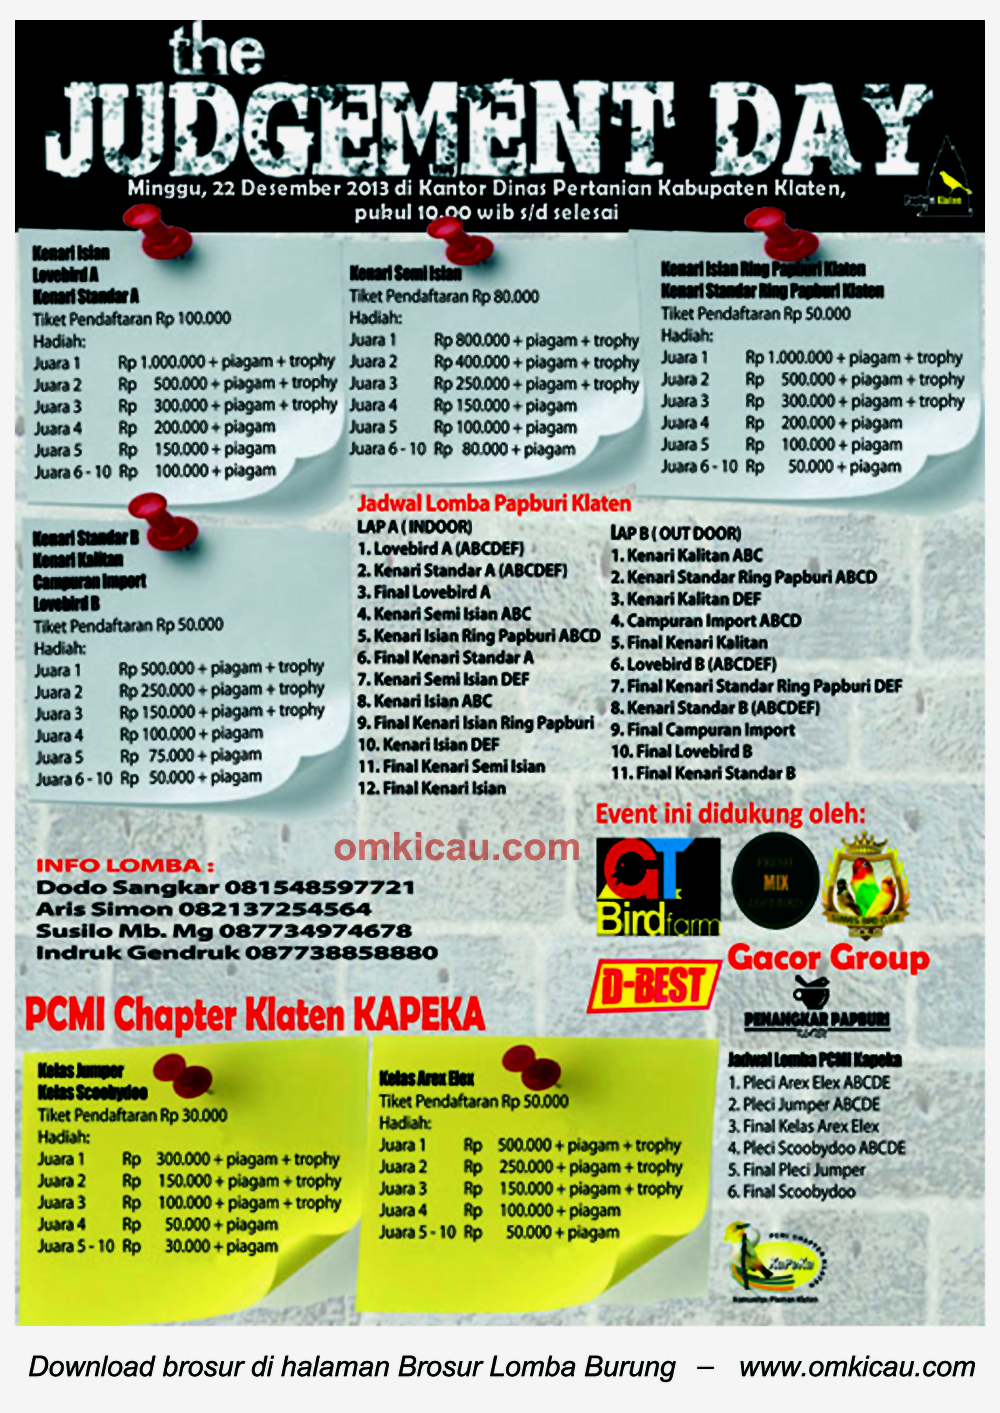 Brosur Lomba Burung The Judgement Day - Papburi Klaten, 22 Desember 2013